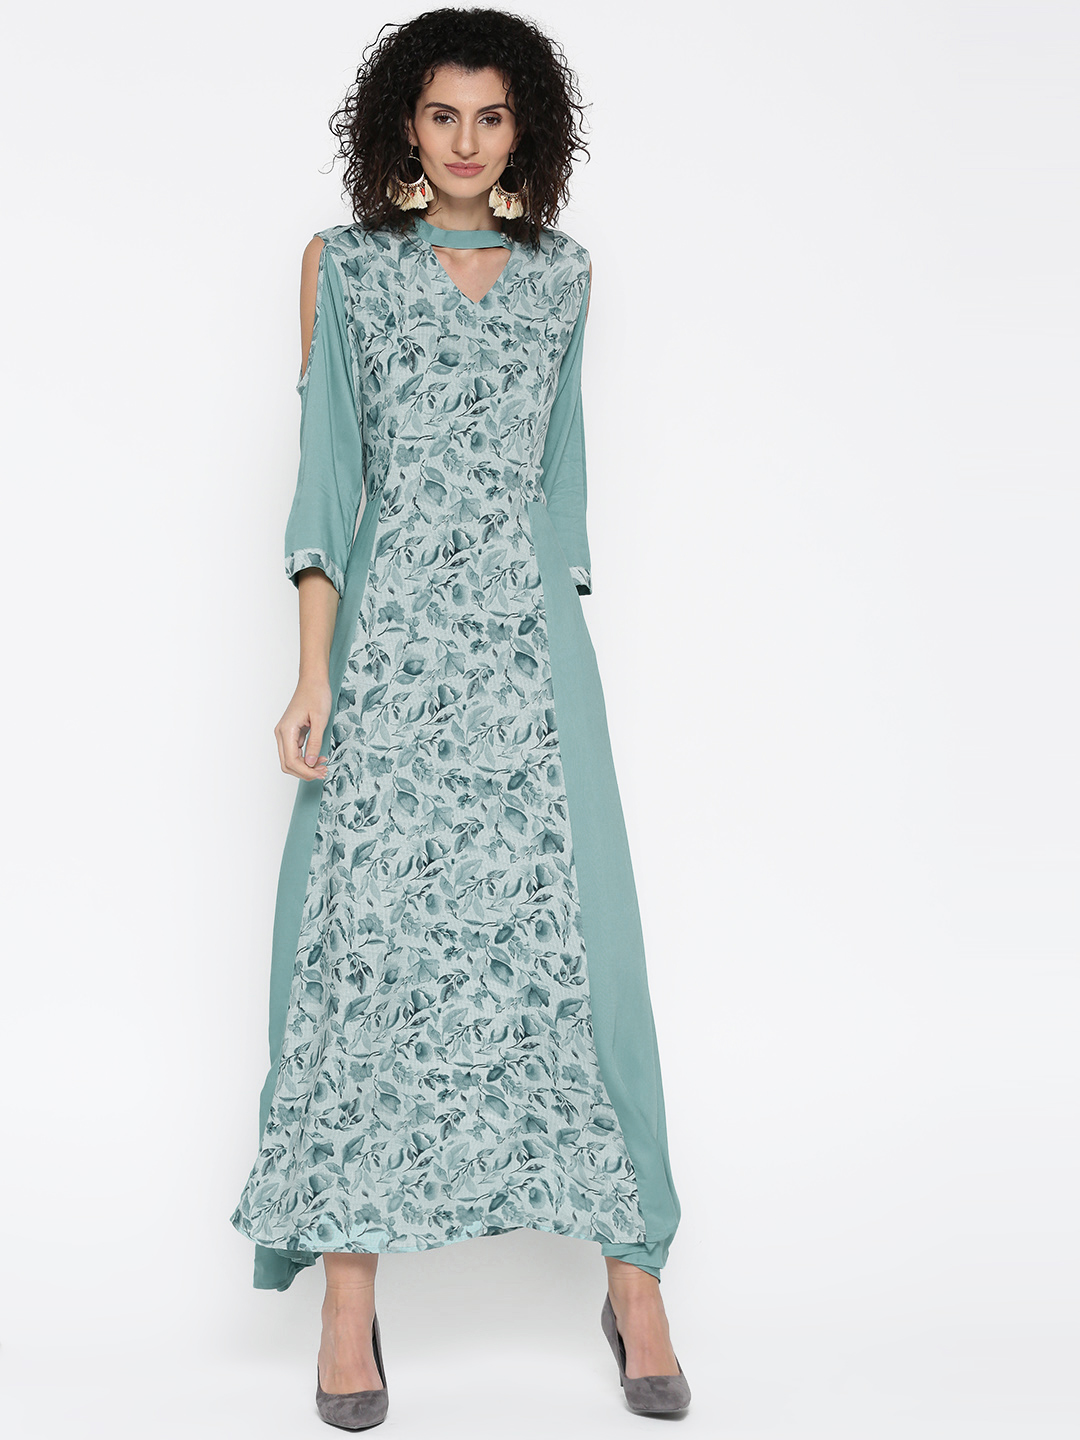 Shree Women Blue Floral Print Maxi Dress Price in India